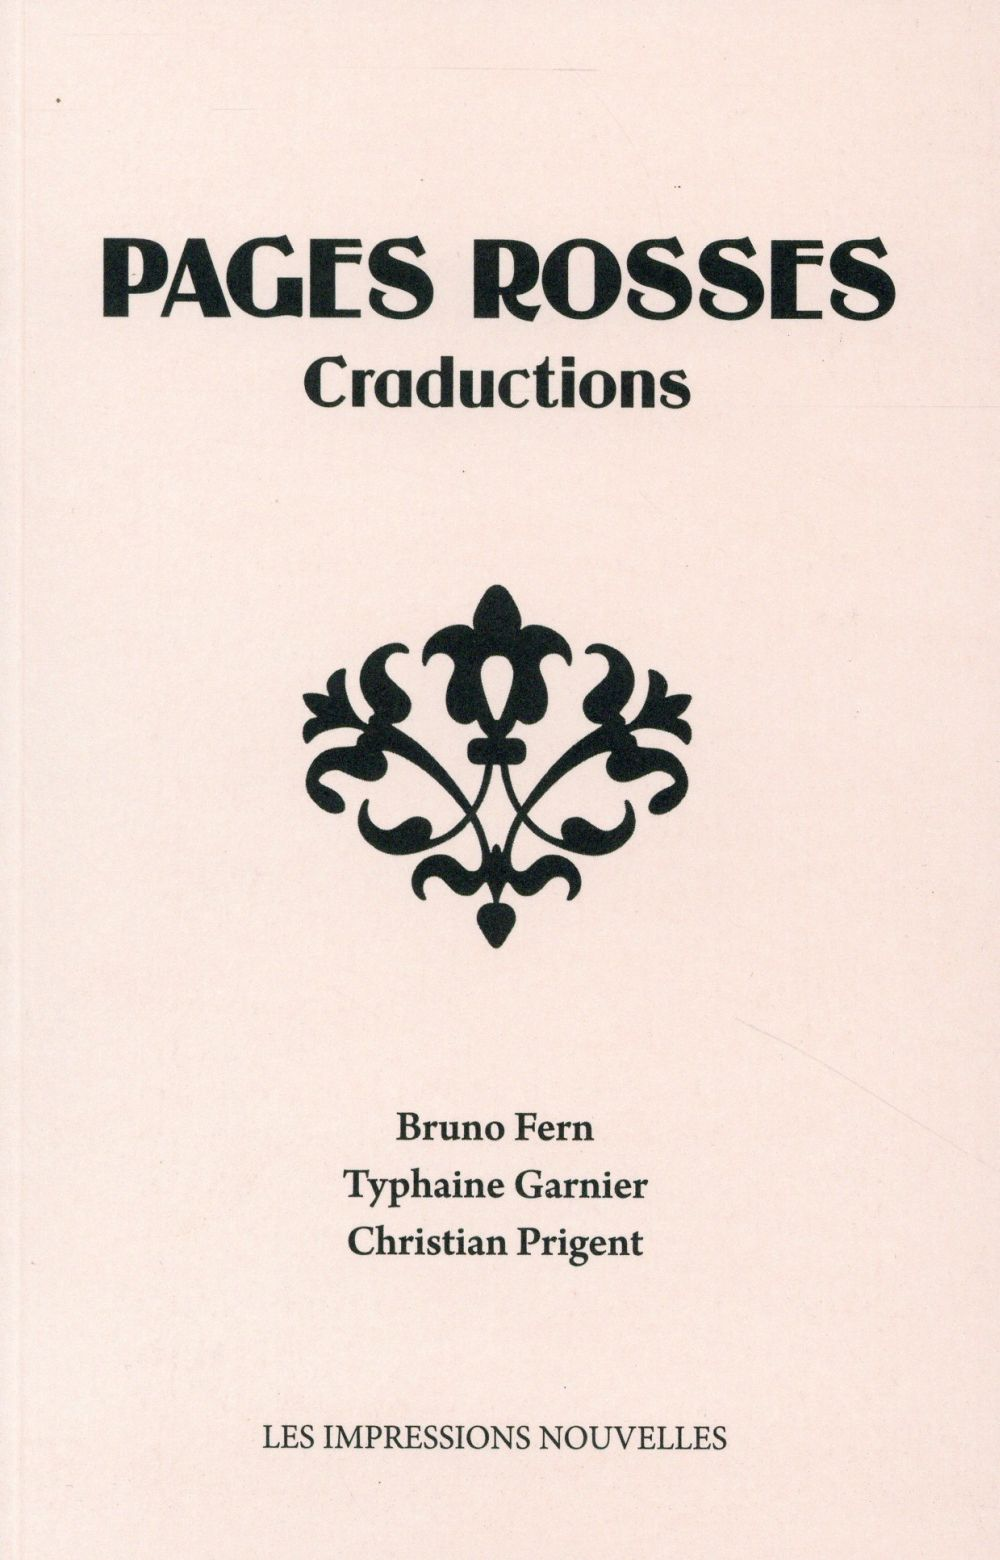 Pages rosses ; craductions